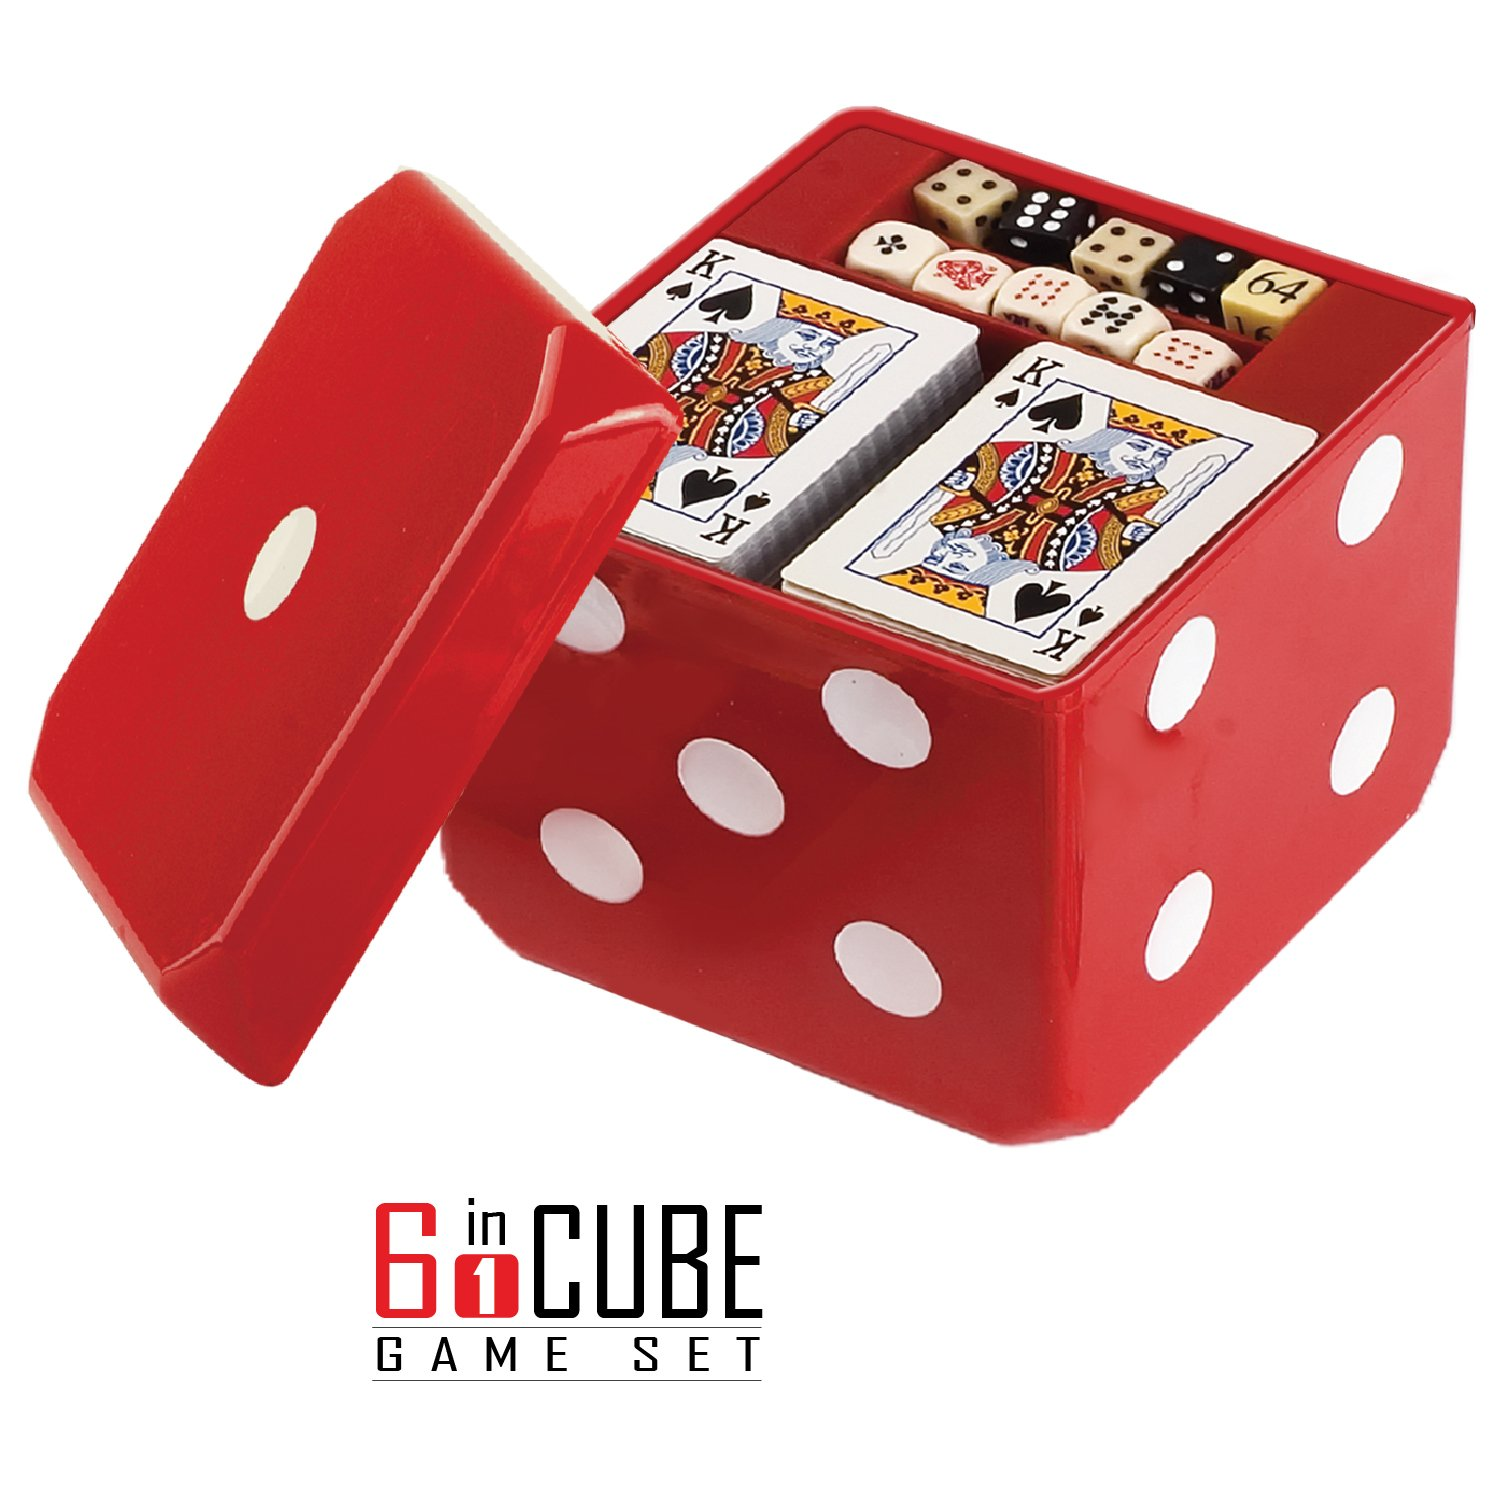 Gamie 6-in-1 Dice Cube Game Set Board Games Casino Set – Includes Chess, Checkers & Backgammon, 2 Decks Playing Cards, Poker Chips, Poker Dice & Dominoes - Complete Kit Family Fun